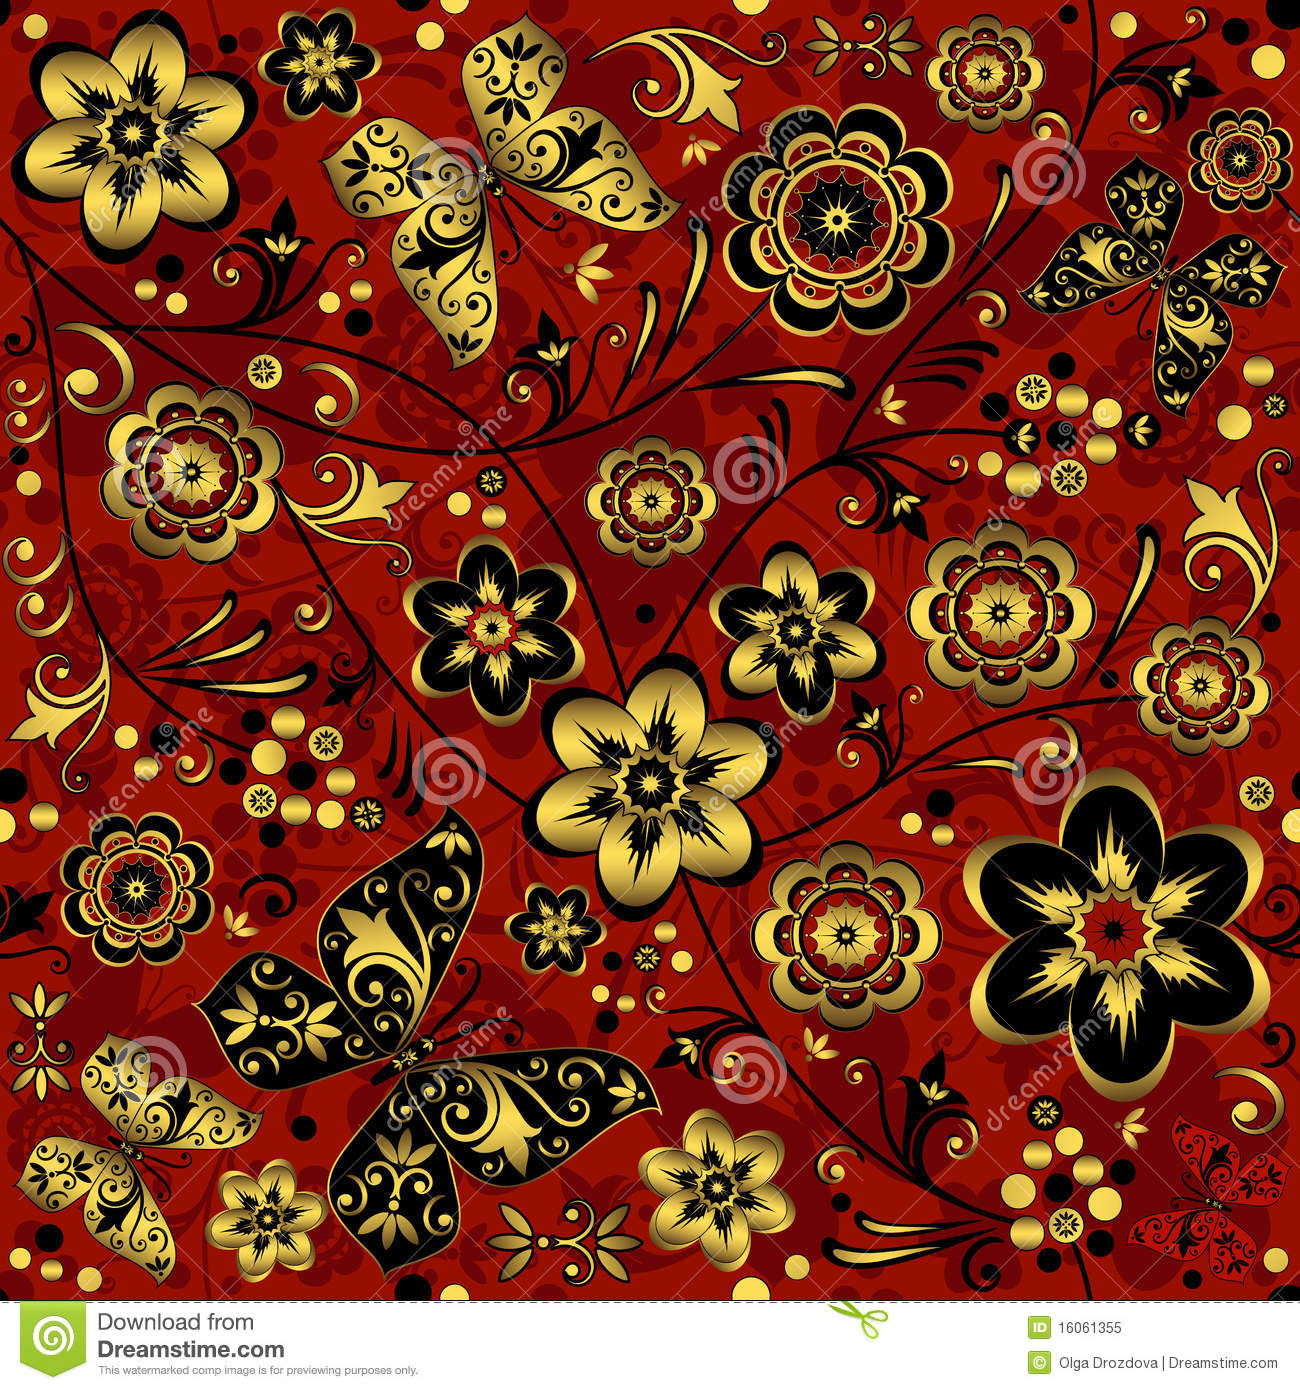 Top Wallpaper Halloween Gold - red-gold-black-seamless-vintage-pattern-16061355  Snapshot_956387.jpg